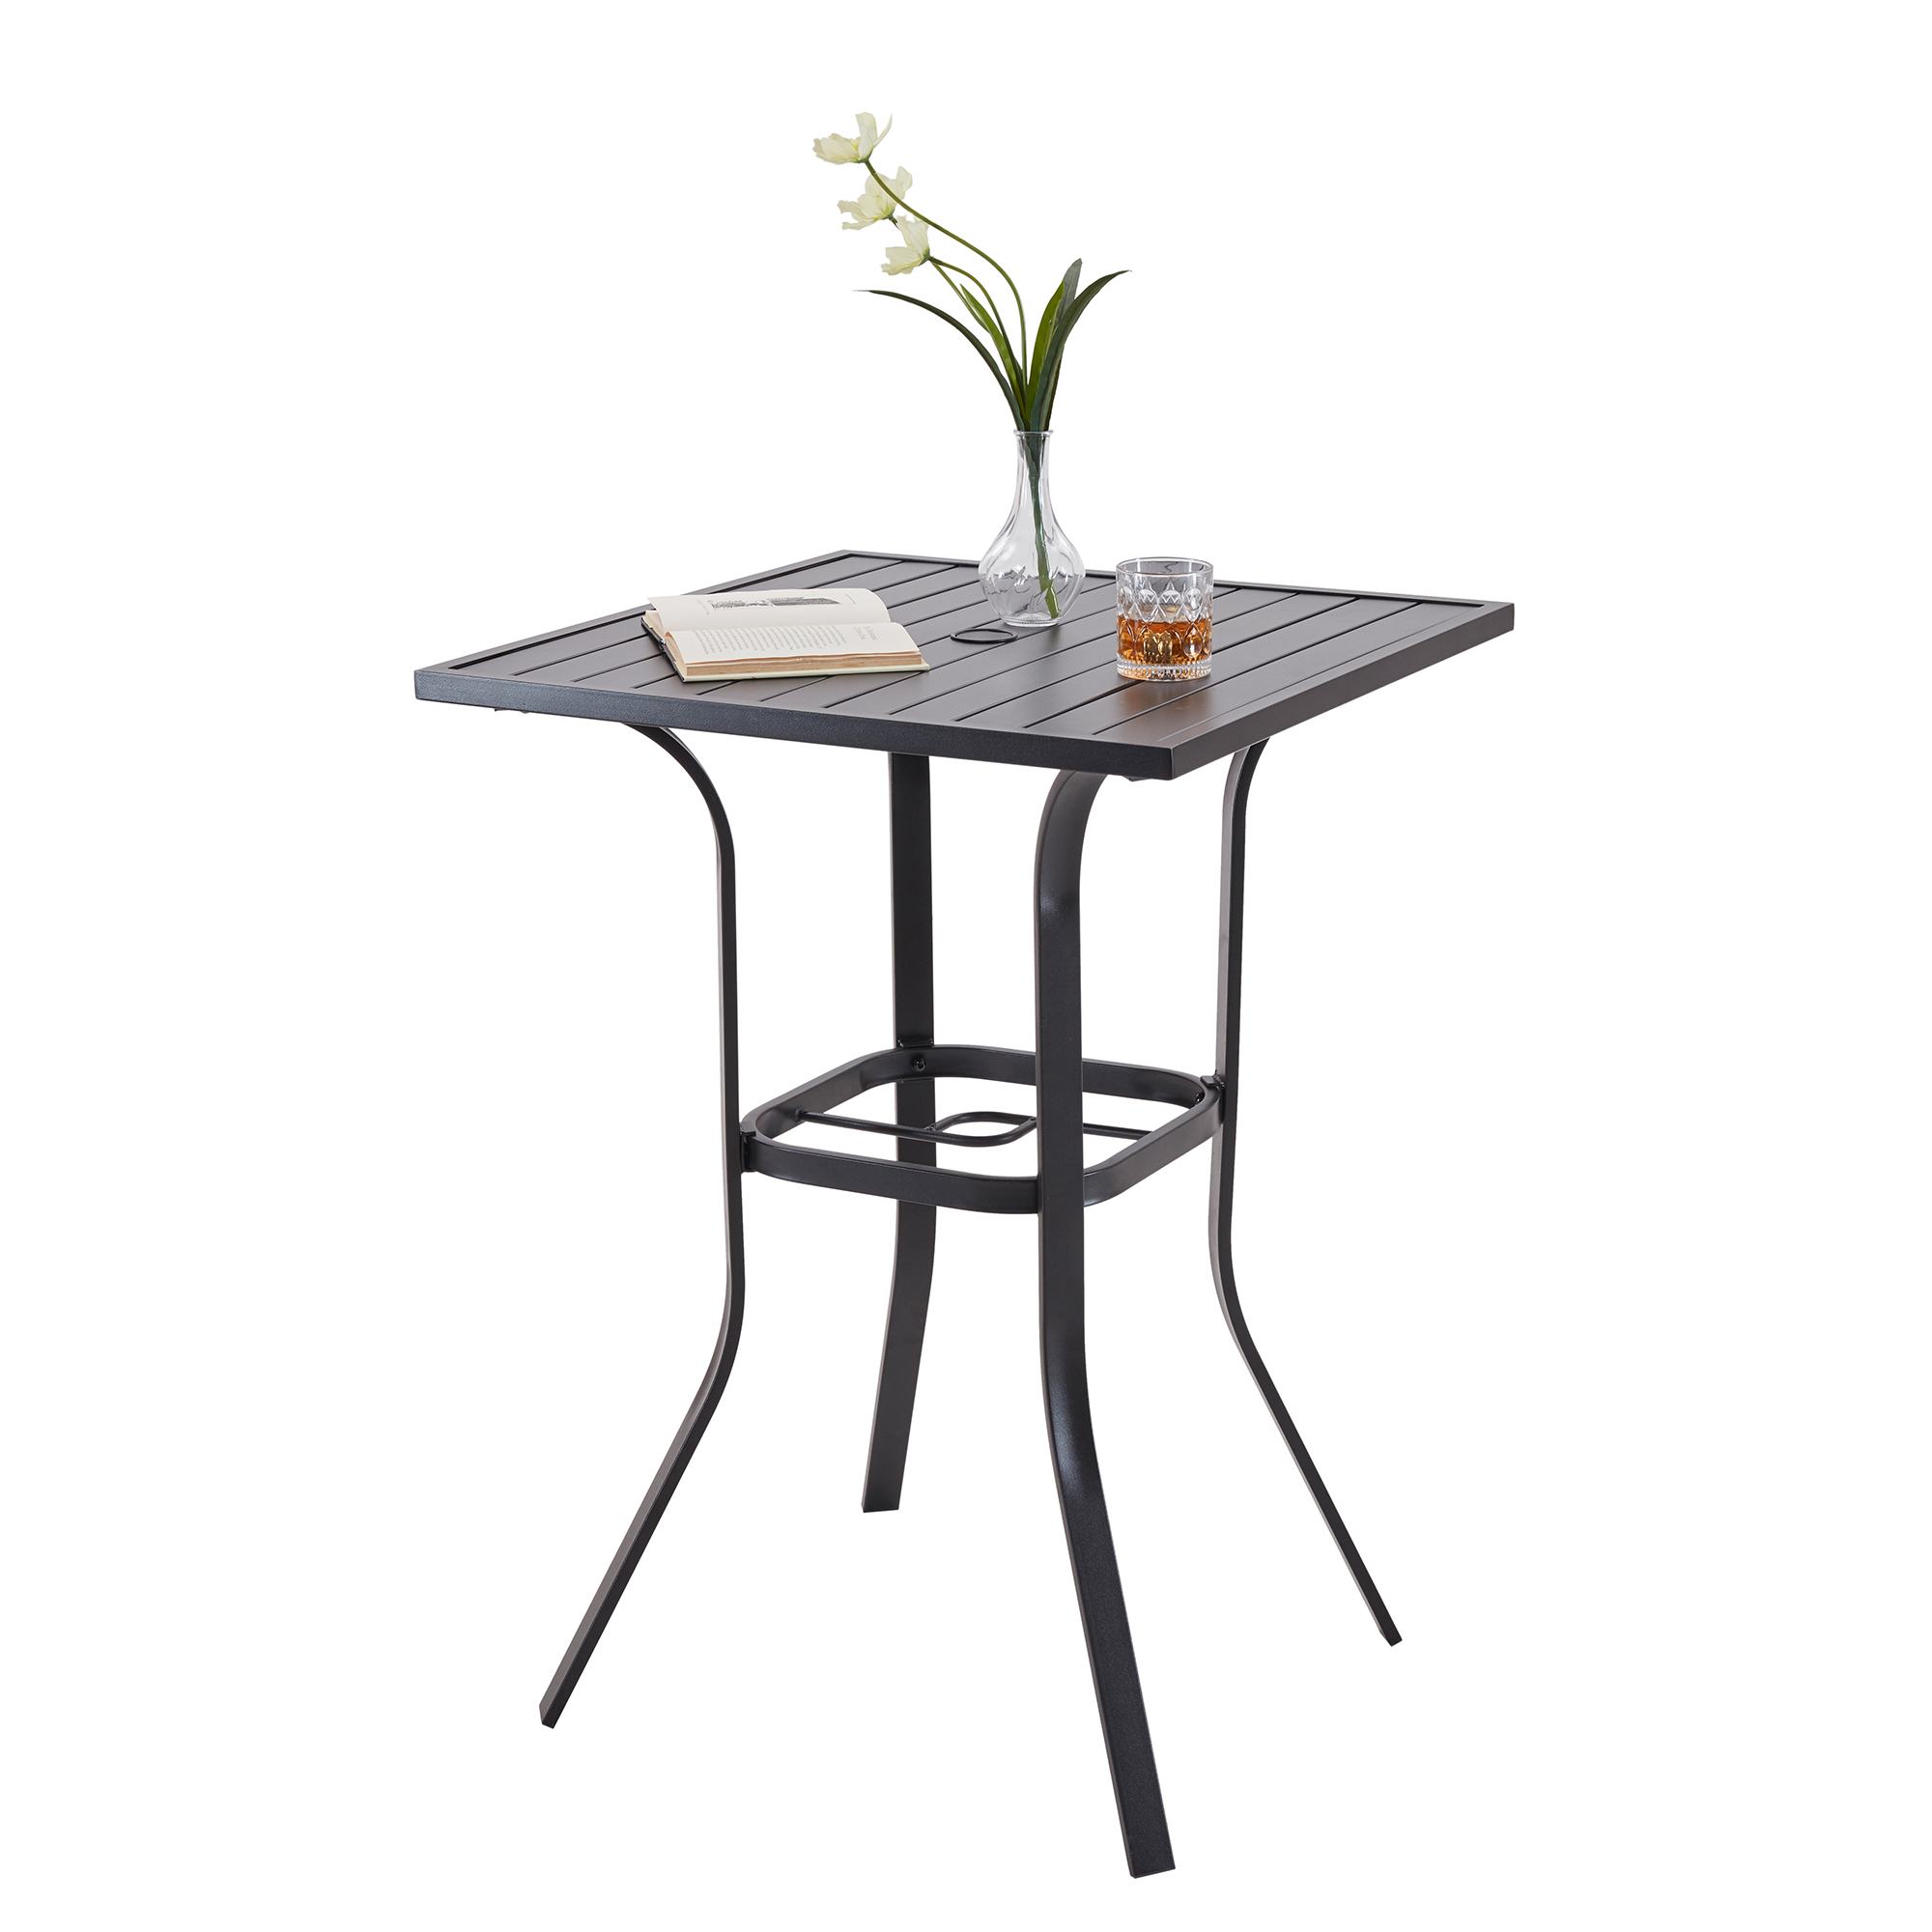 square patio coffee tables for garden furniture durable camping metal dining table with umbrella hole high bar tables